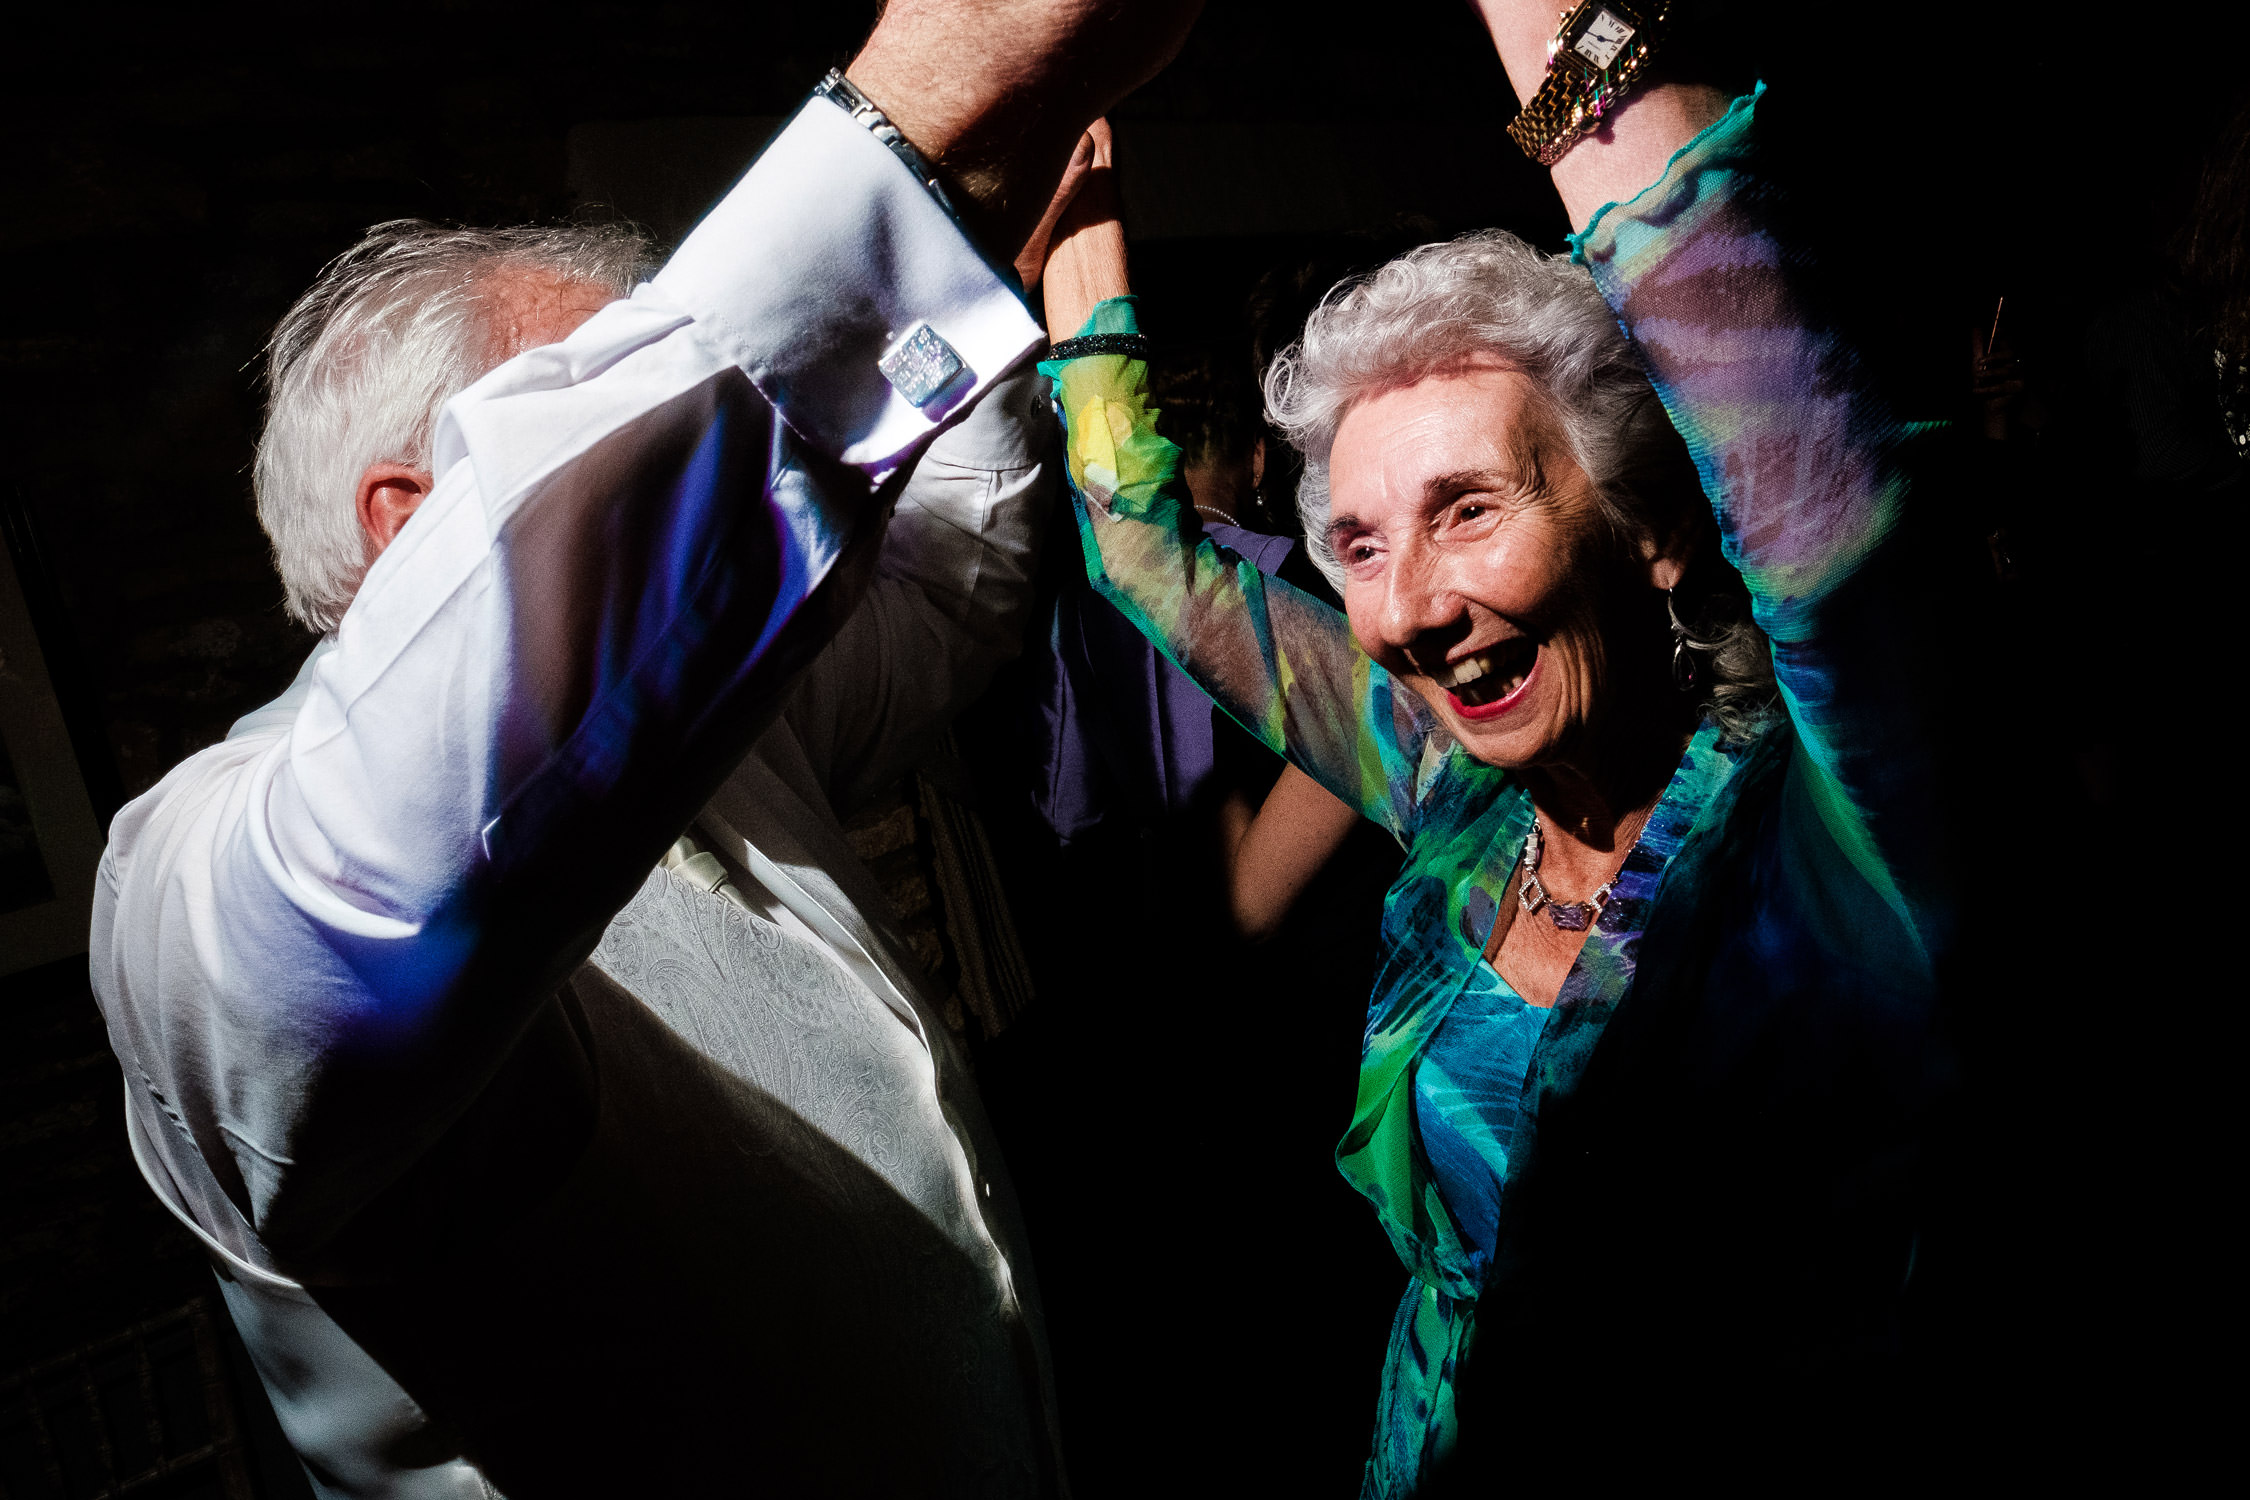 granny dancing at wedding reception